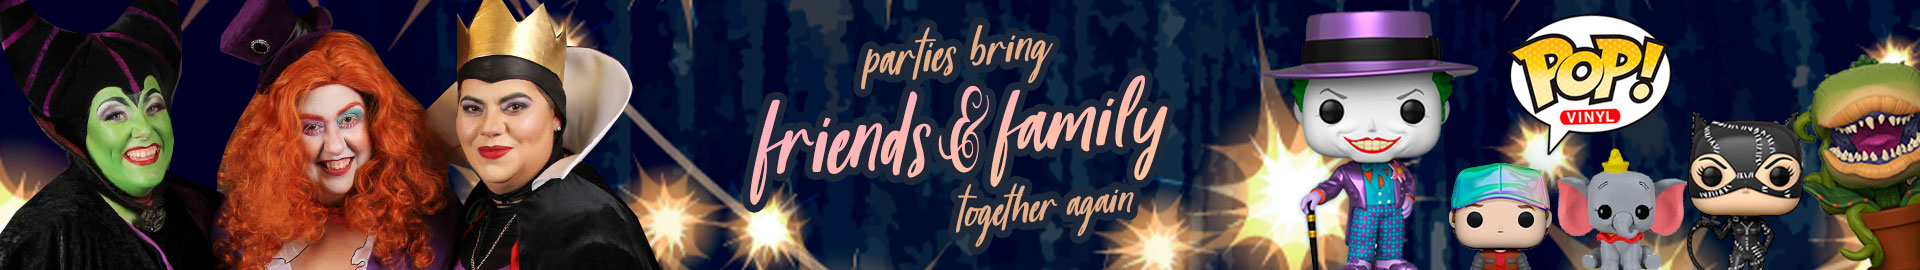 Parties bring friends & family together again